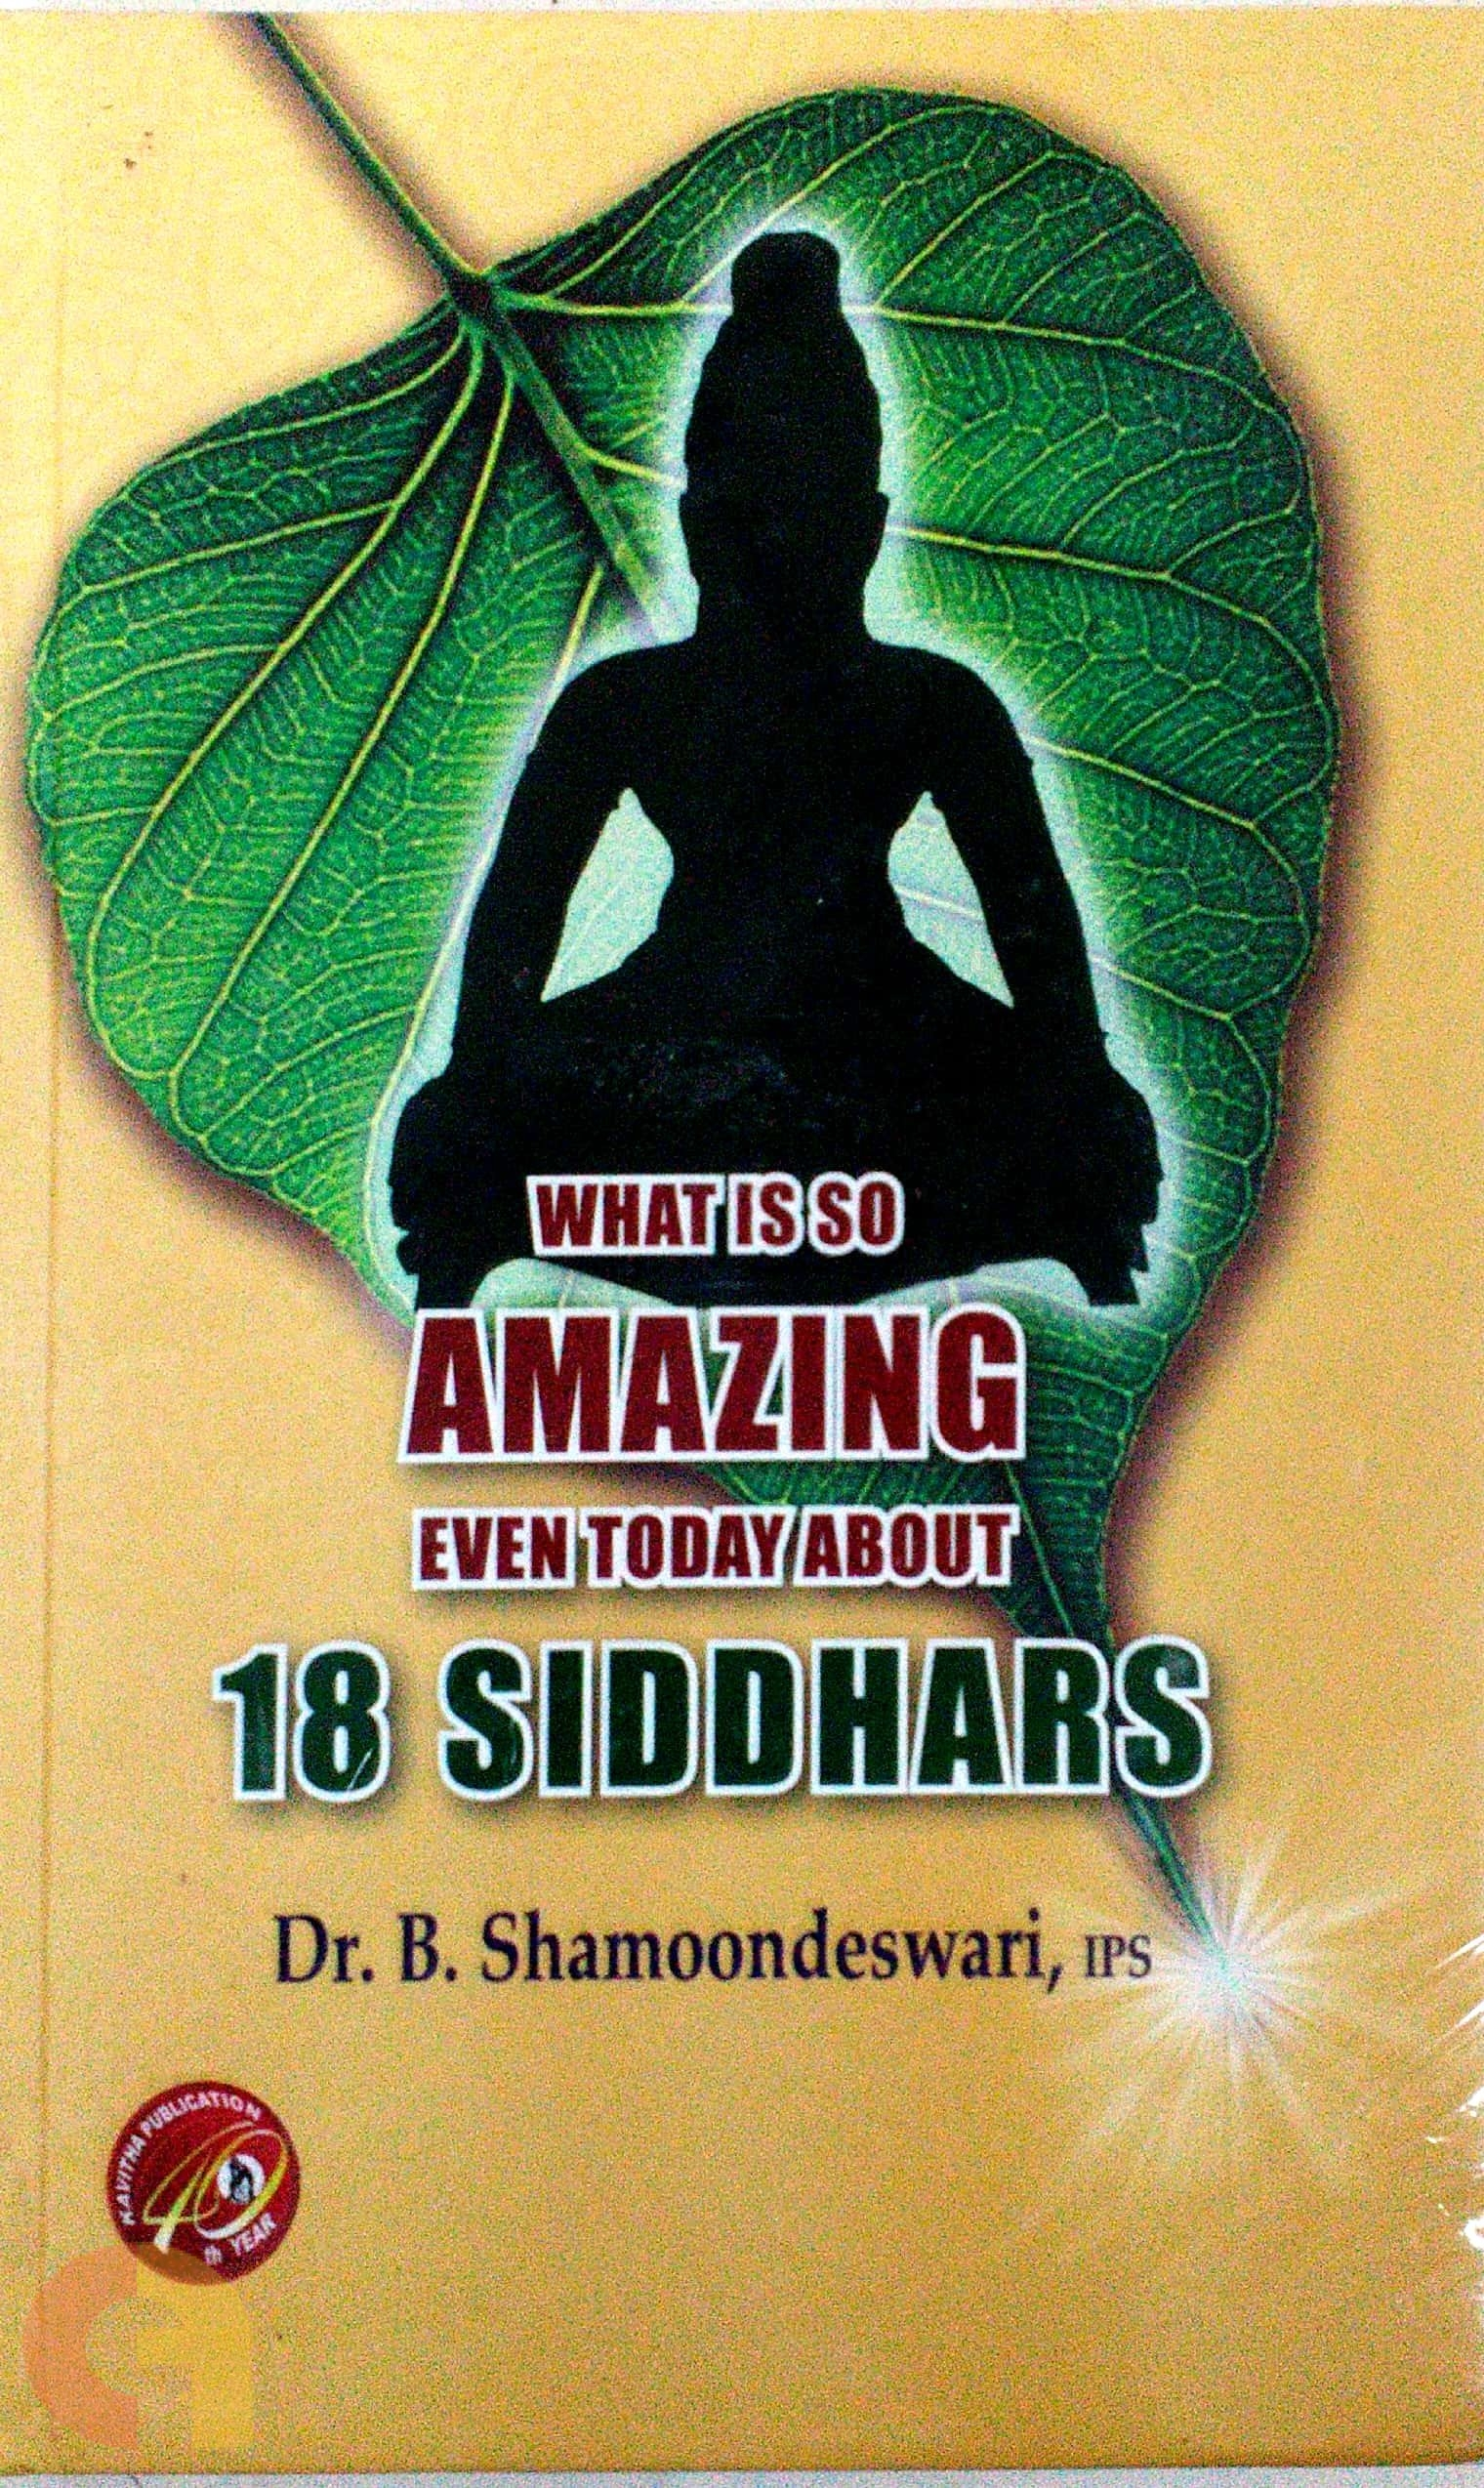 What is so amazing 18 siddhars